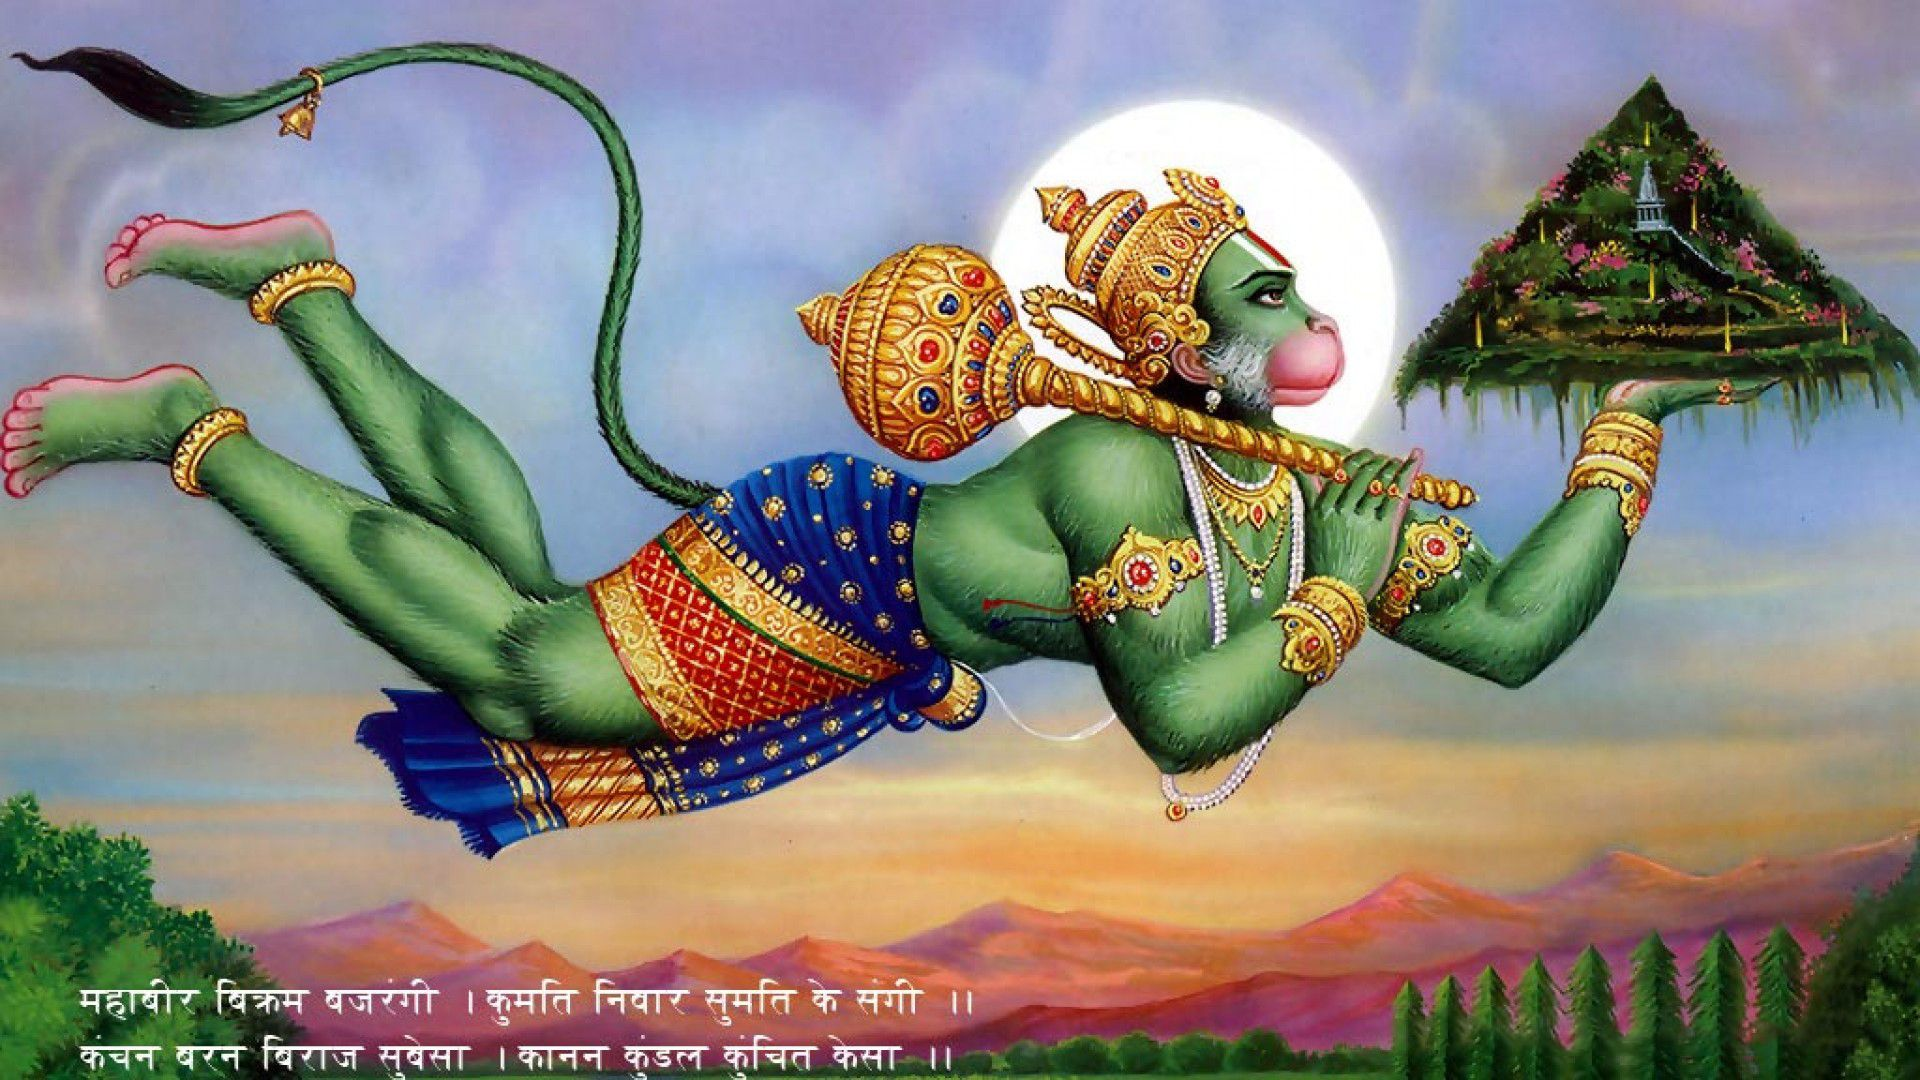 Hd wallpaper hanuman - Download Latest Lord Hanuman Hd Wallpapers Free At Hdwallpapersz Net Super Collection Of Mp3 Songs Pinterest Lord